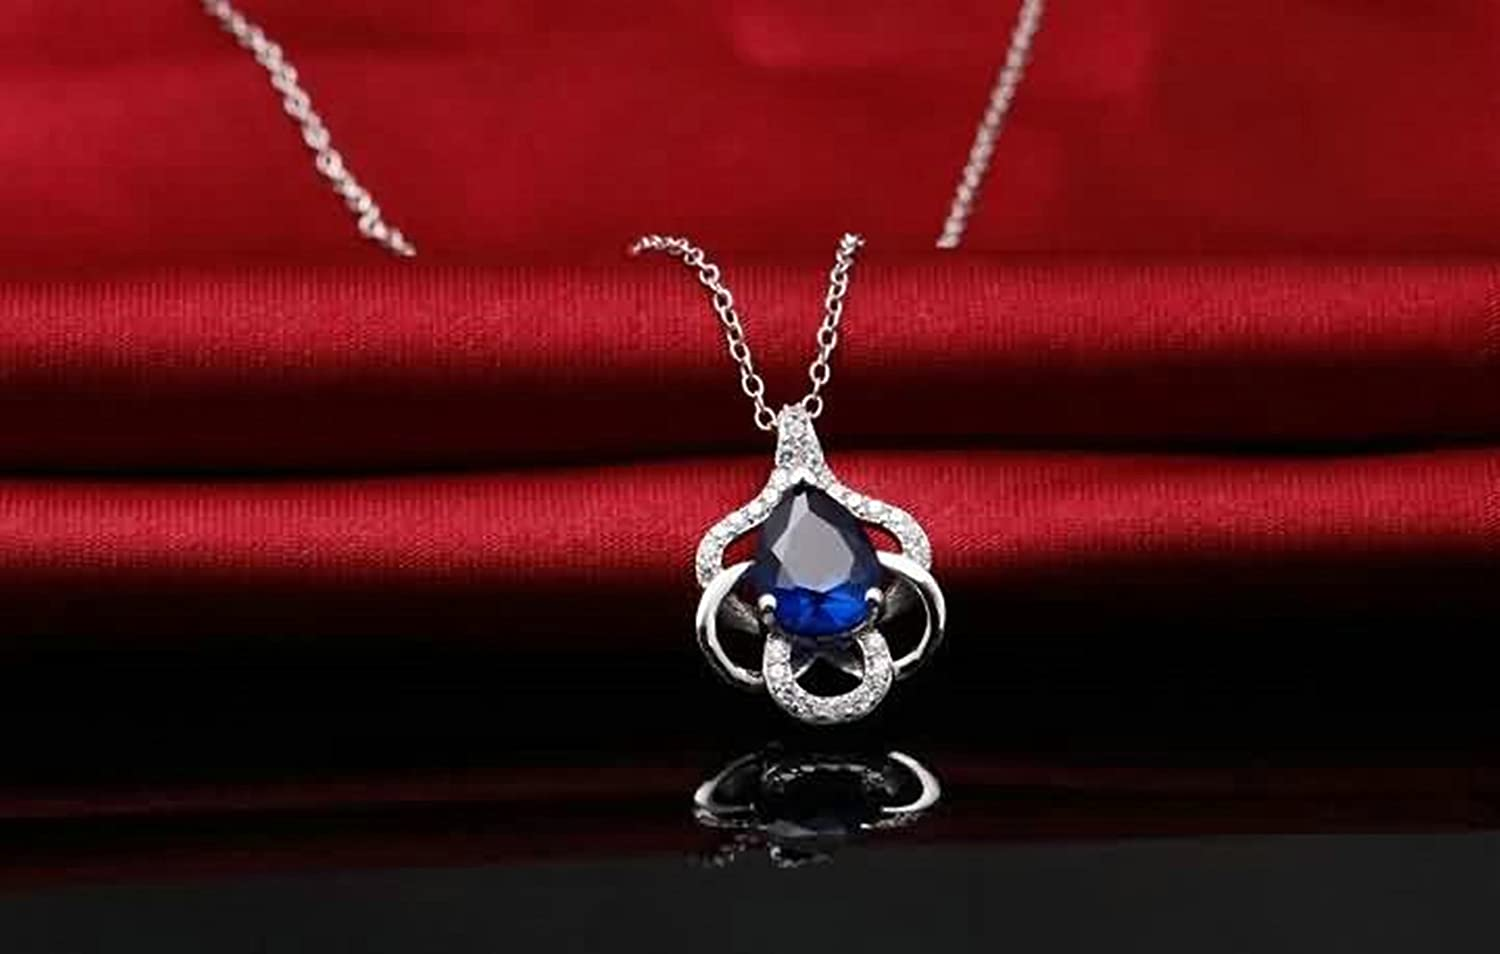 Aokarry Womens 925 Silver Sterling Pendant Necklace Crystal Flower Pendant for Mom